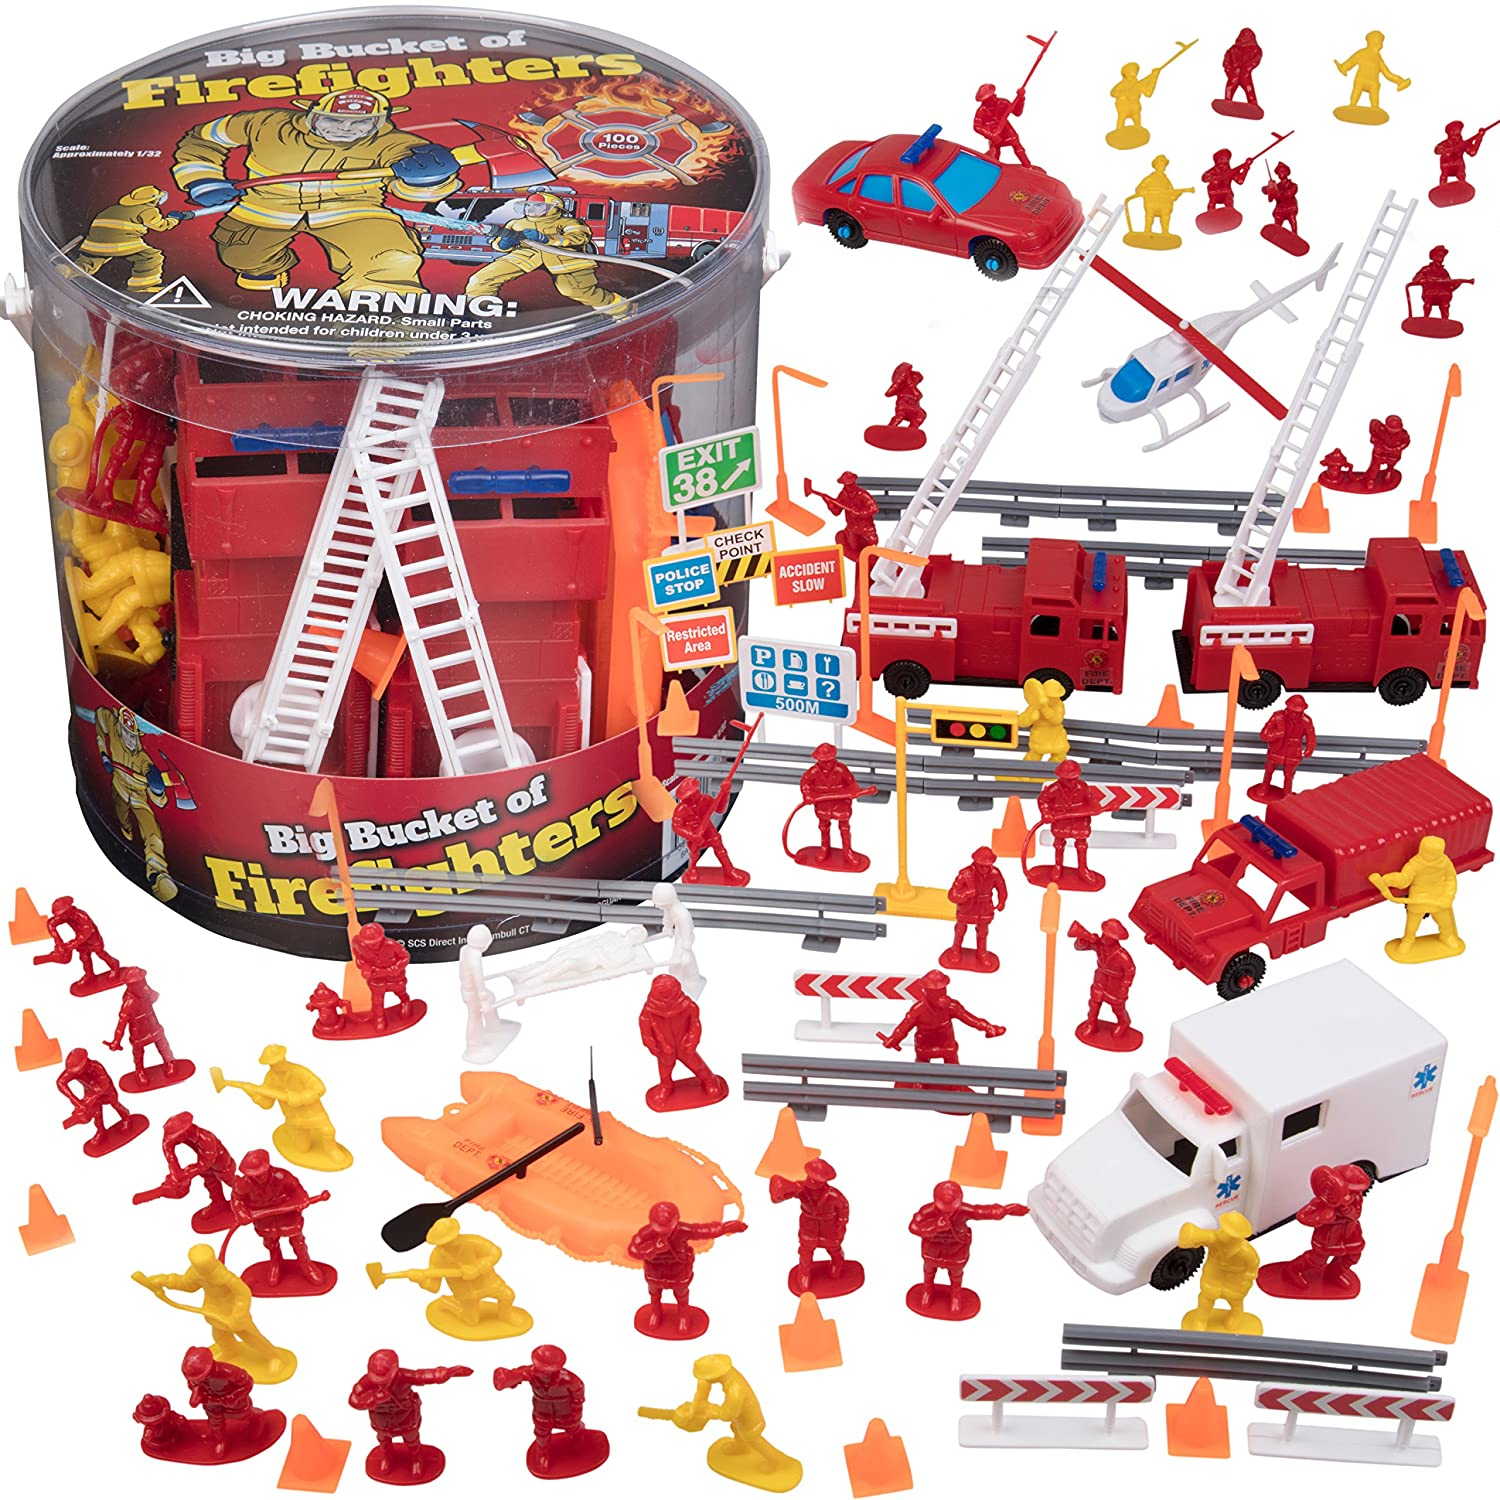 SCS Direct Firemen Action Figures - Big Bucket of Firefighters - Huge 100 Piece Set